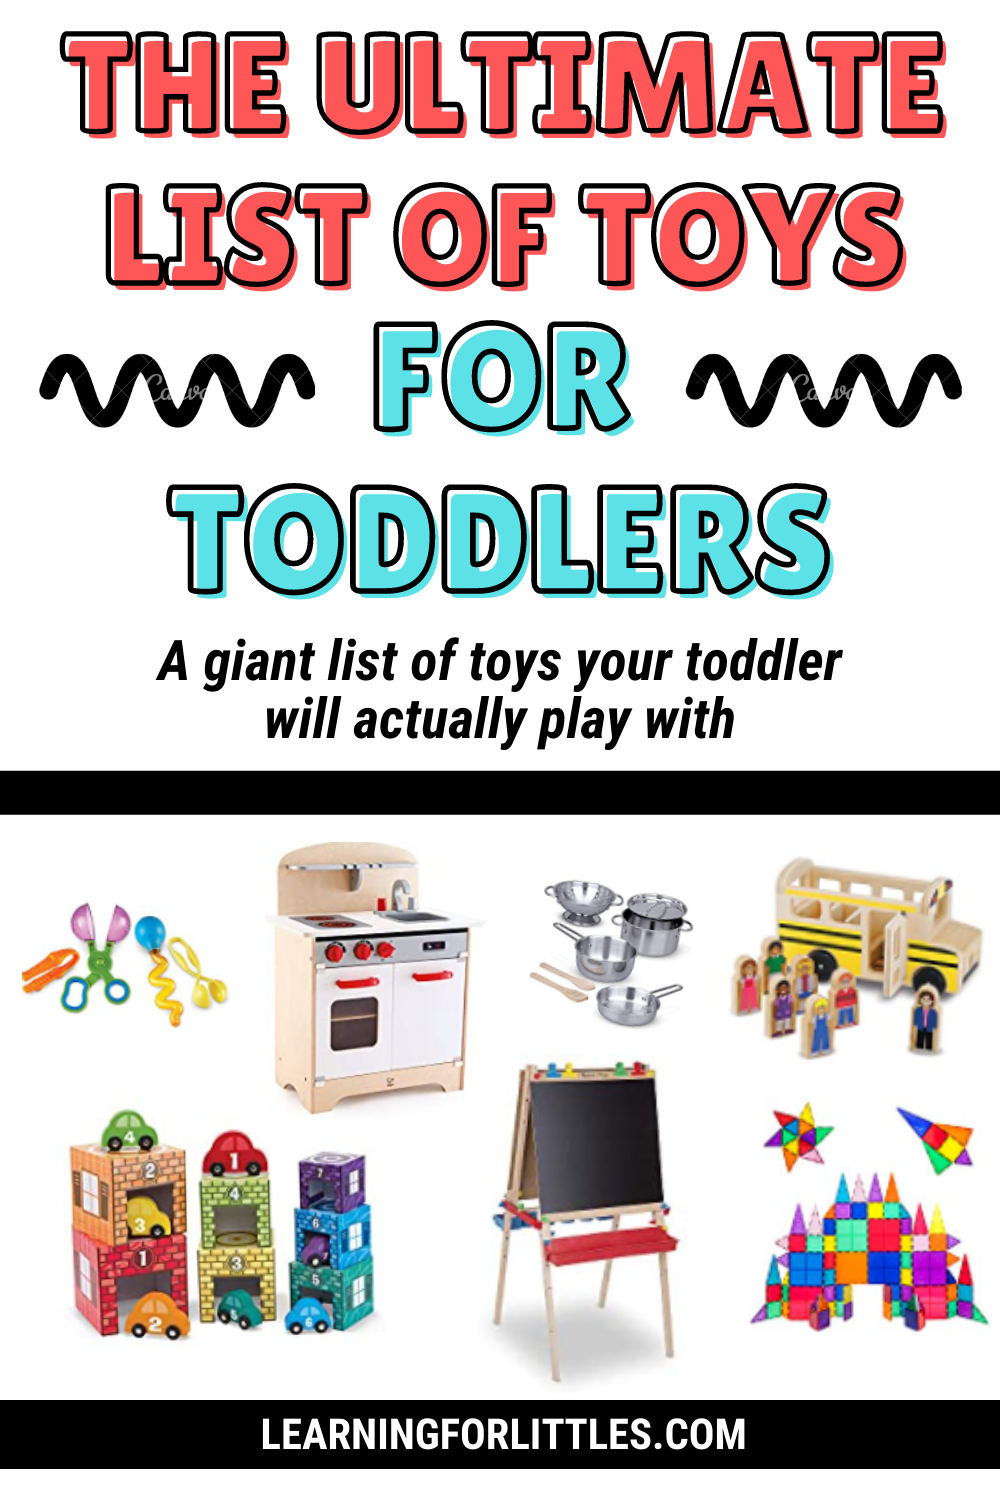 The Best Toys for Toddlers: The Ultimate List